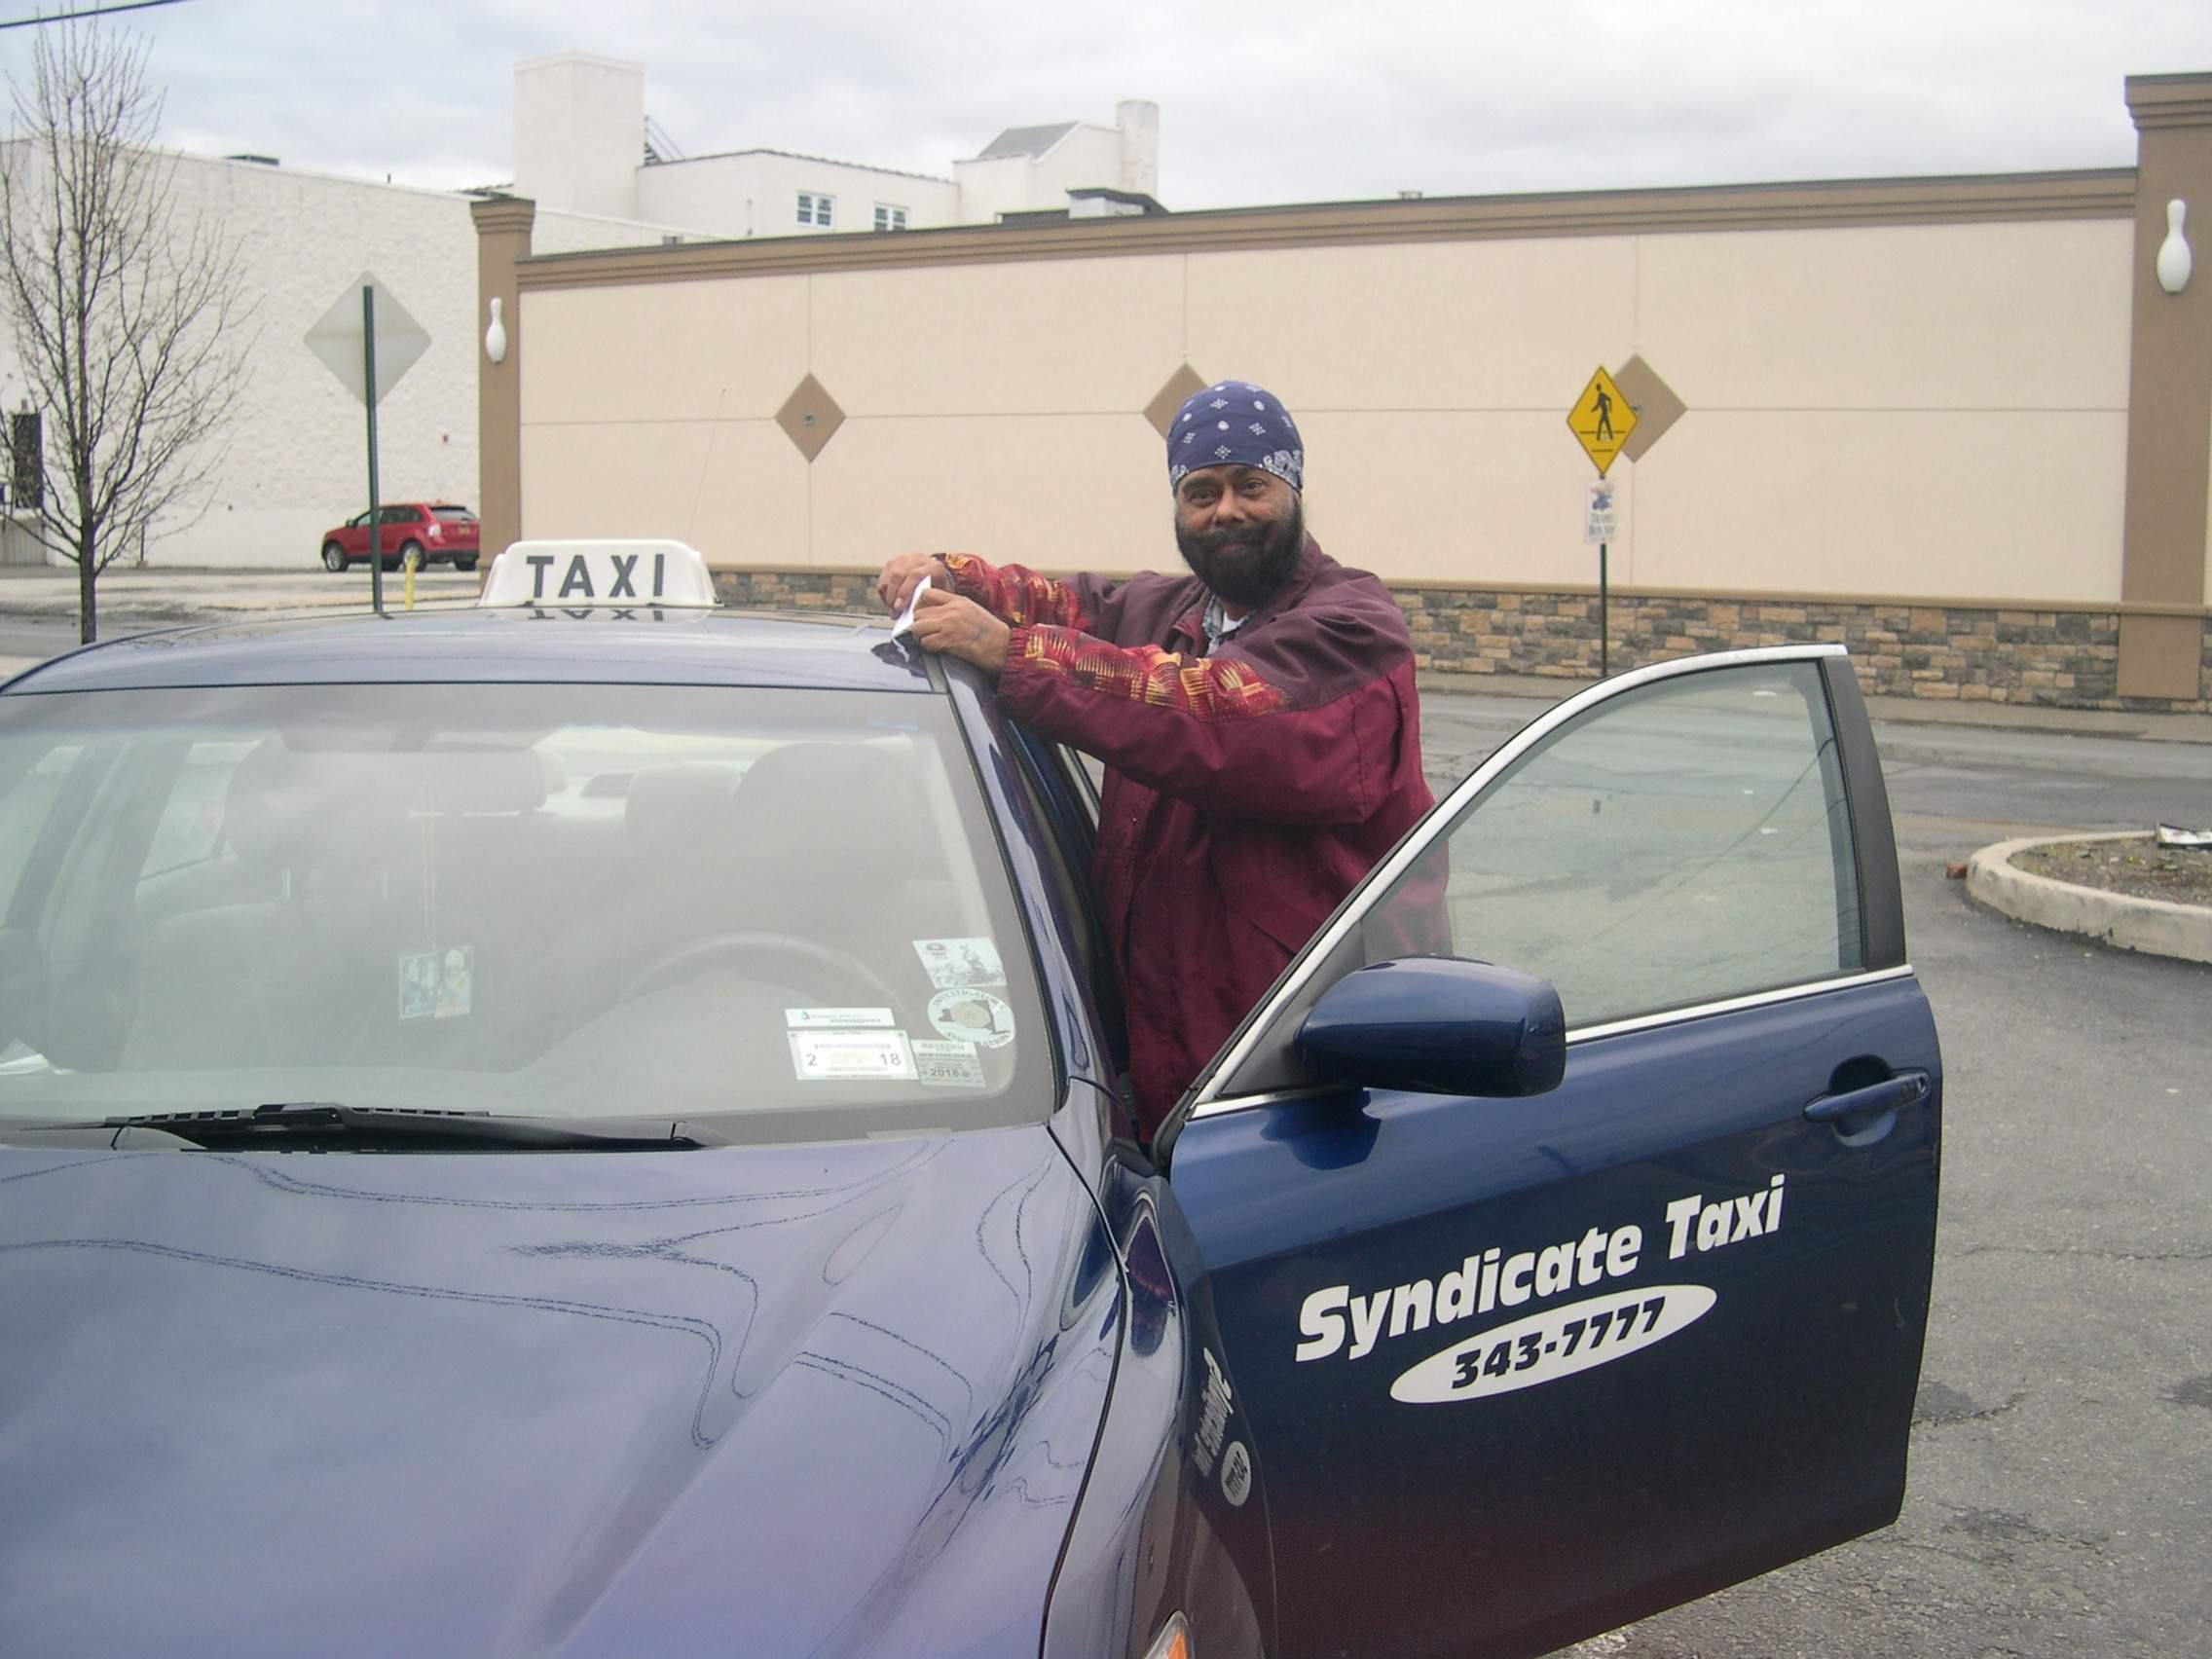 Company logo of Syndicate Taxi